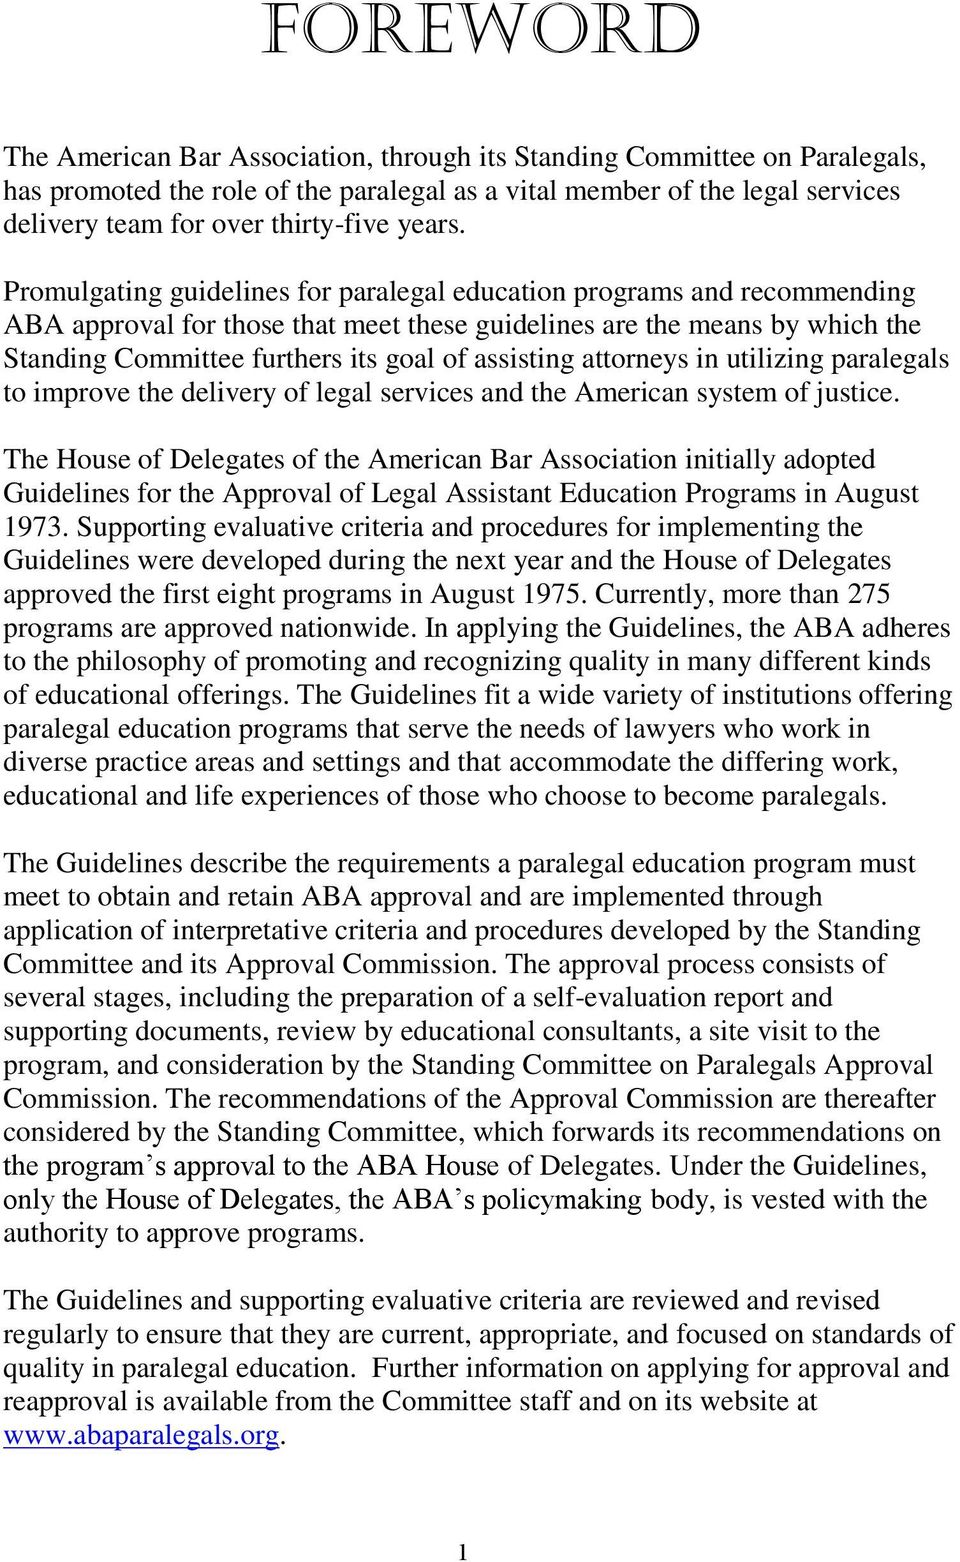 Promulgating guidelines for paralegal education programs and recommending ABA approval for those that meet these guidelines are the means by which the Standing Committee furthers its goal of